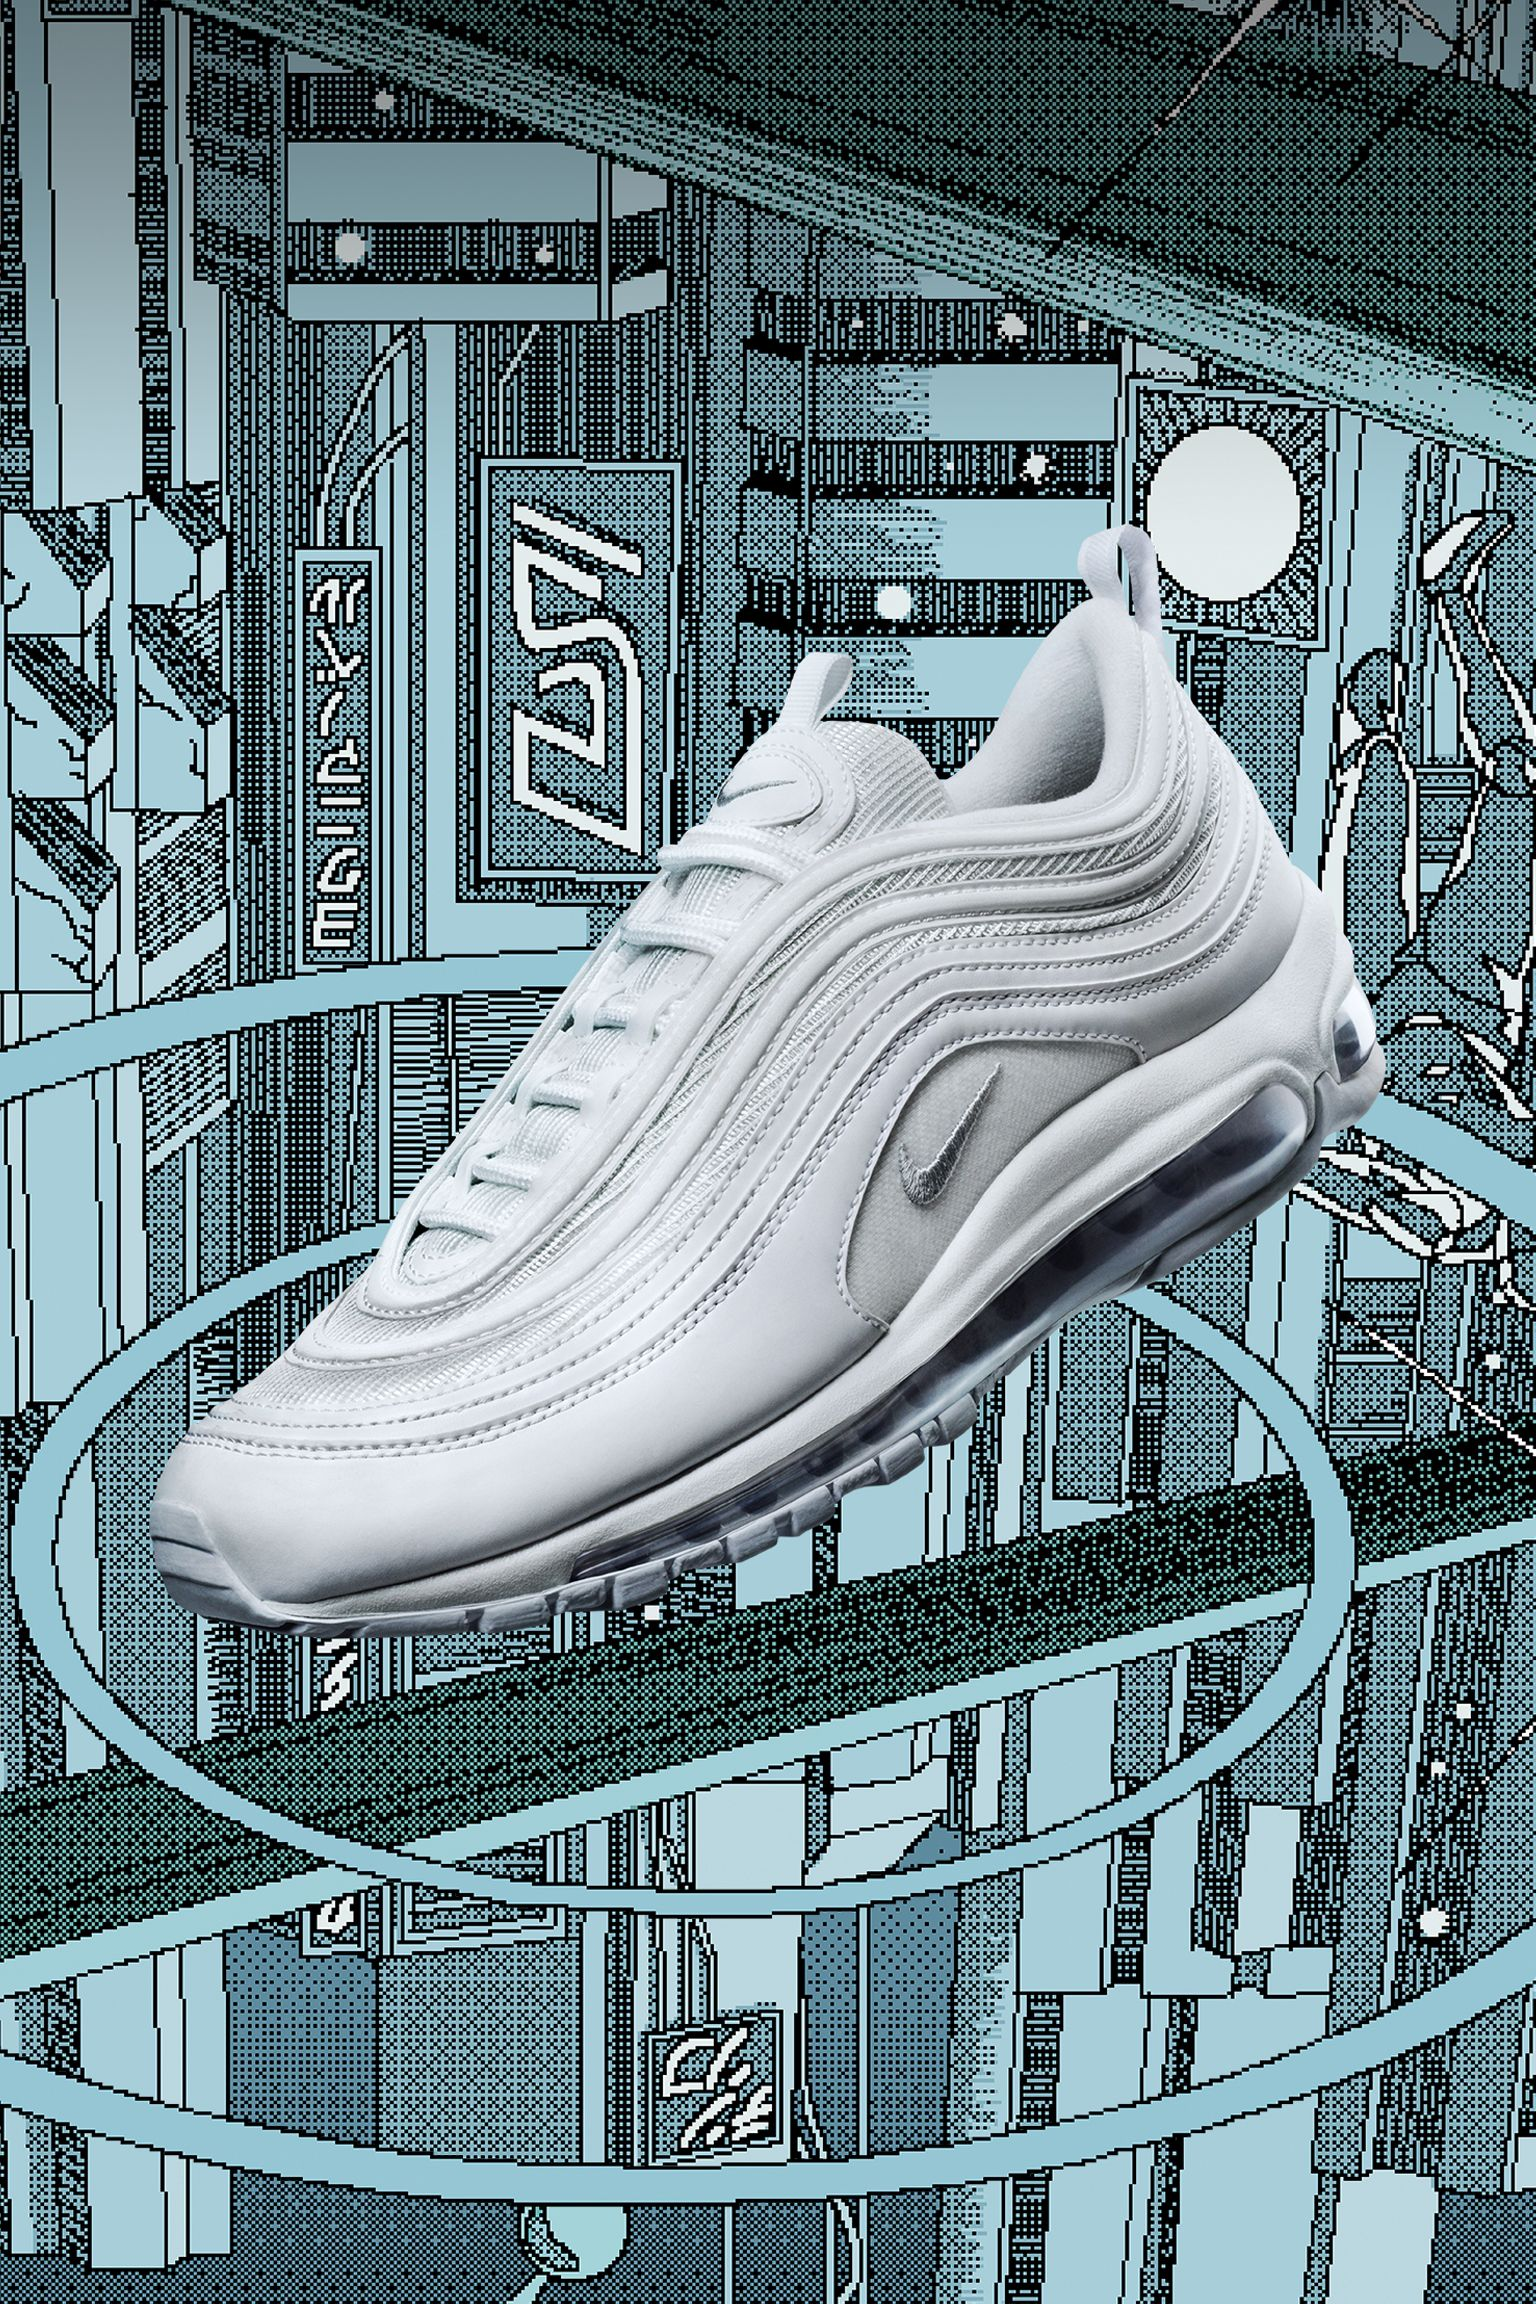 Nike Air Max 97 Tiple White - 921826 101 | Nike air max